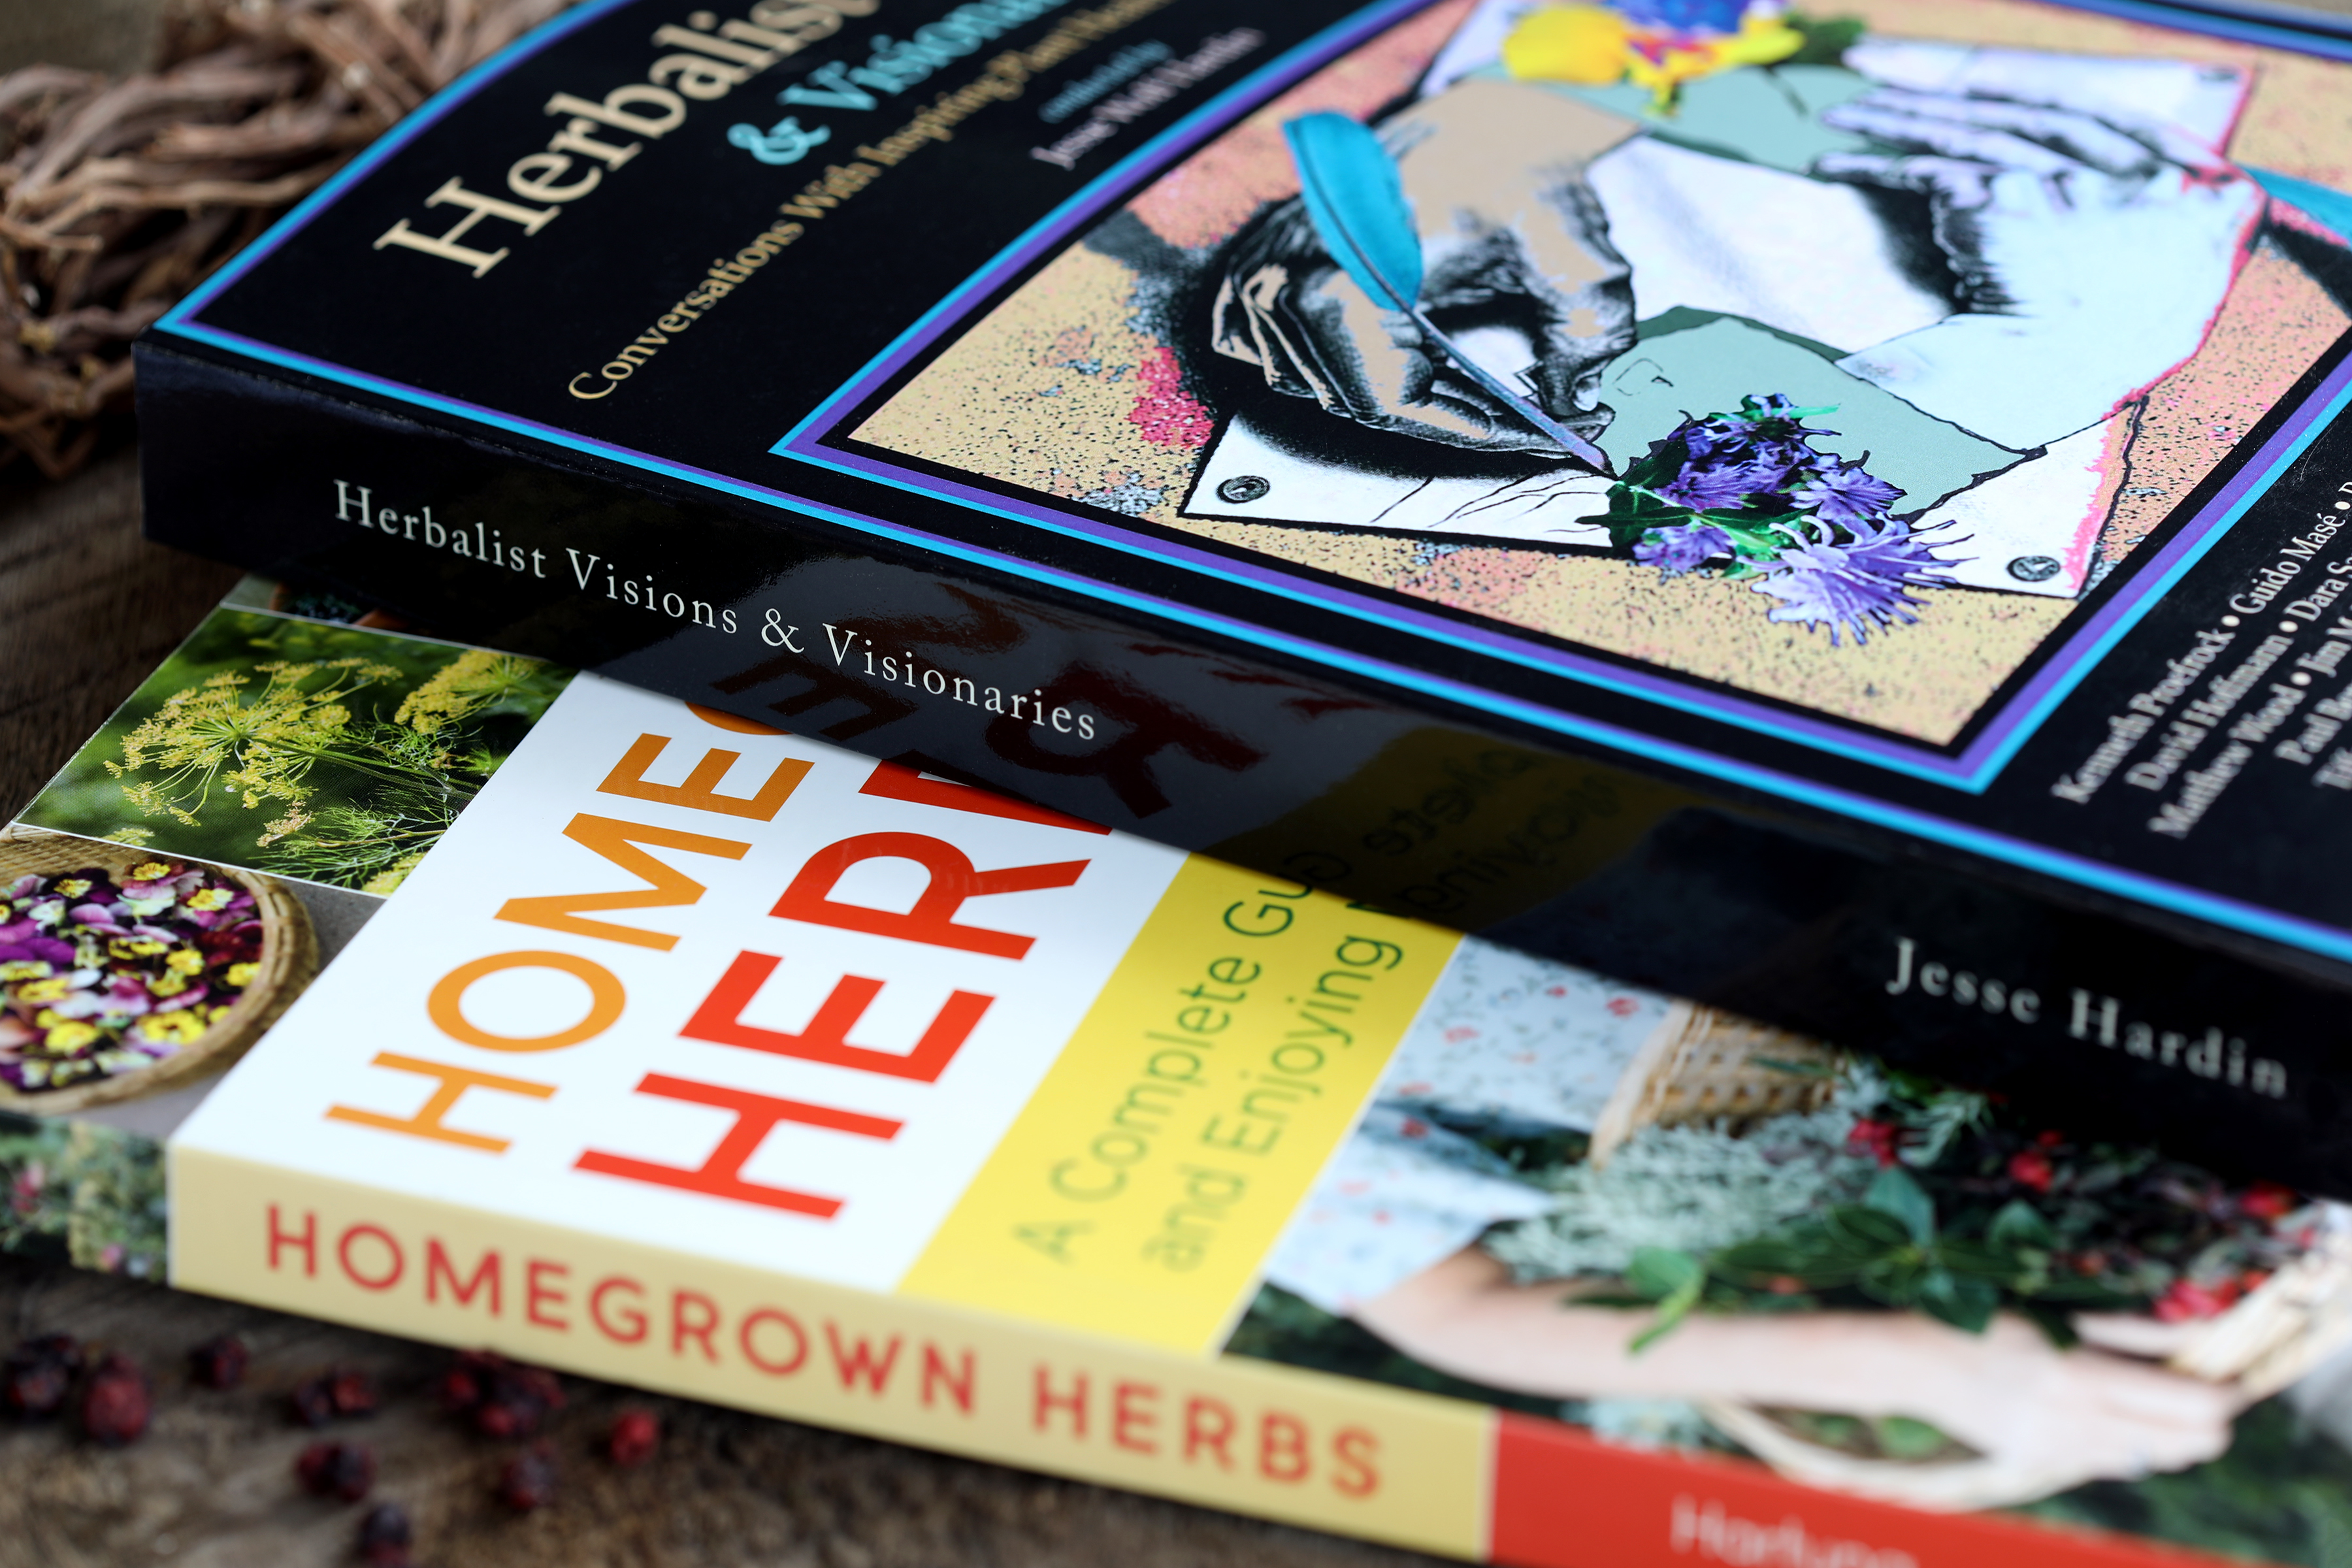 Close up photo of two colorful books on herbs and herbalists